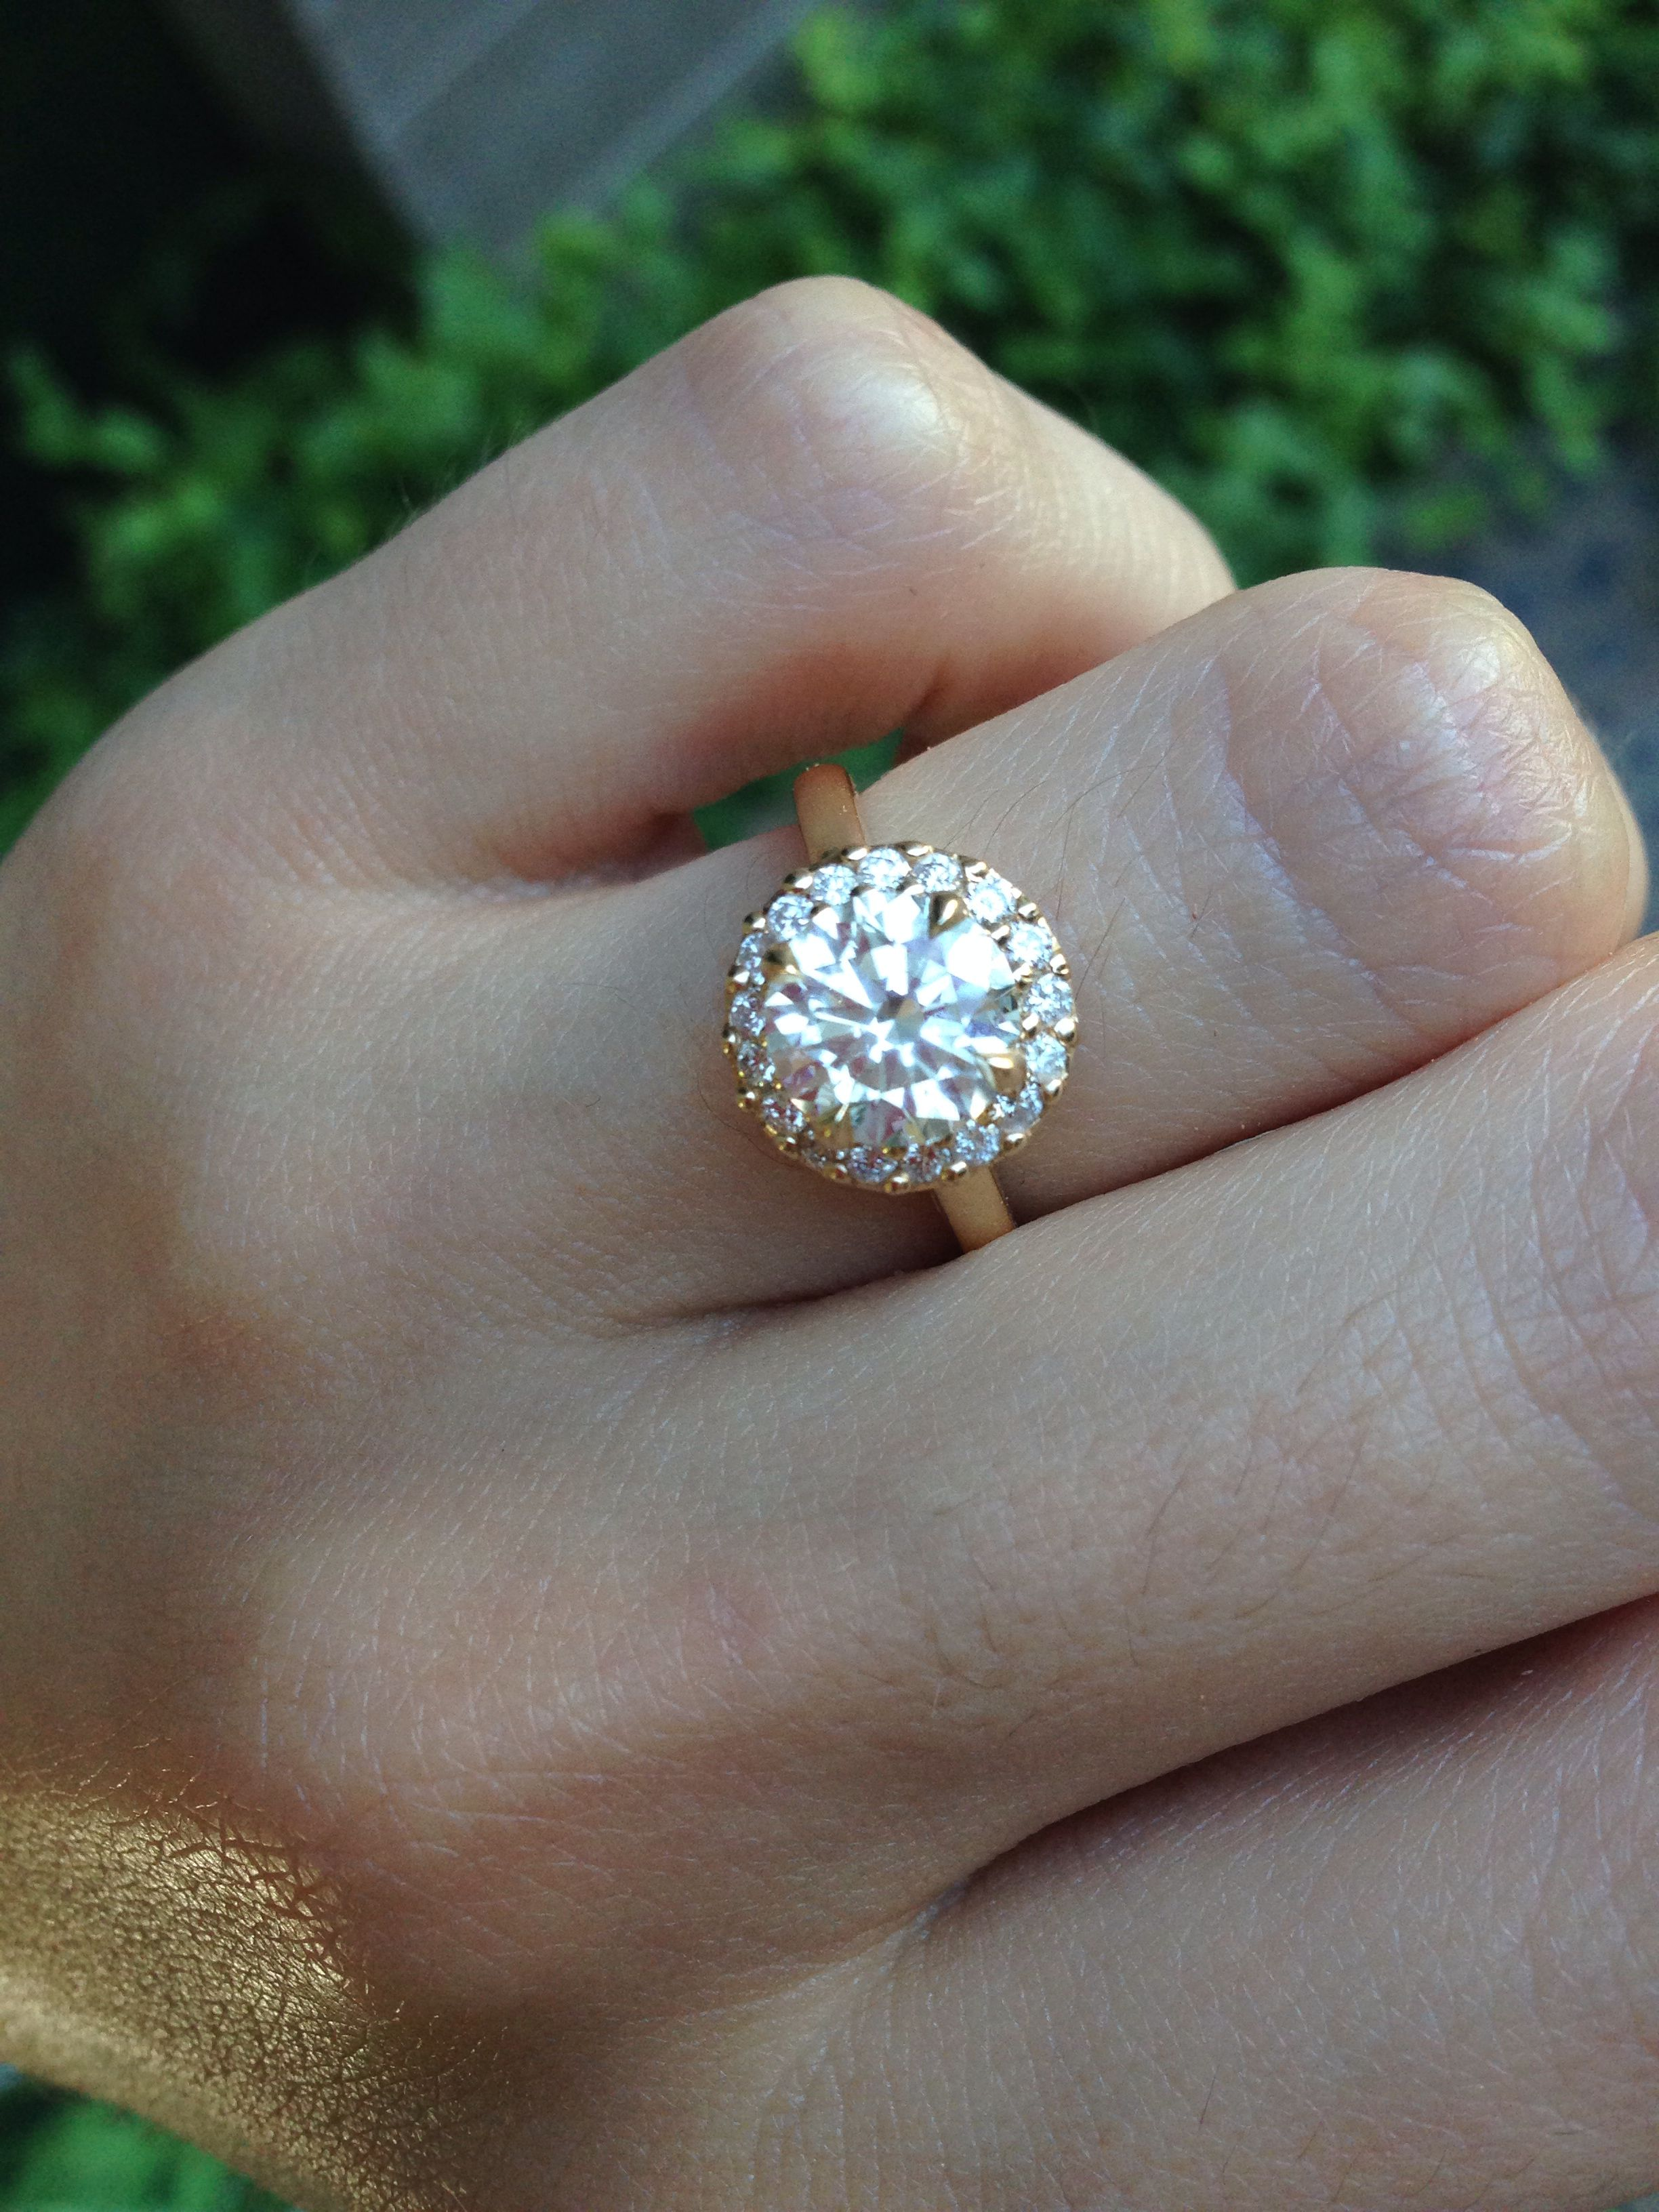 Beautiful antique wedding ring by far the prettiest ring i have